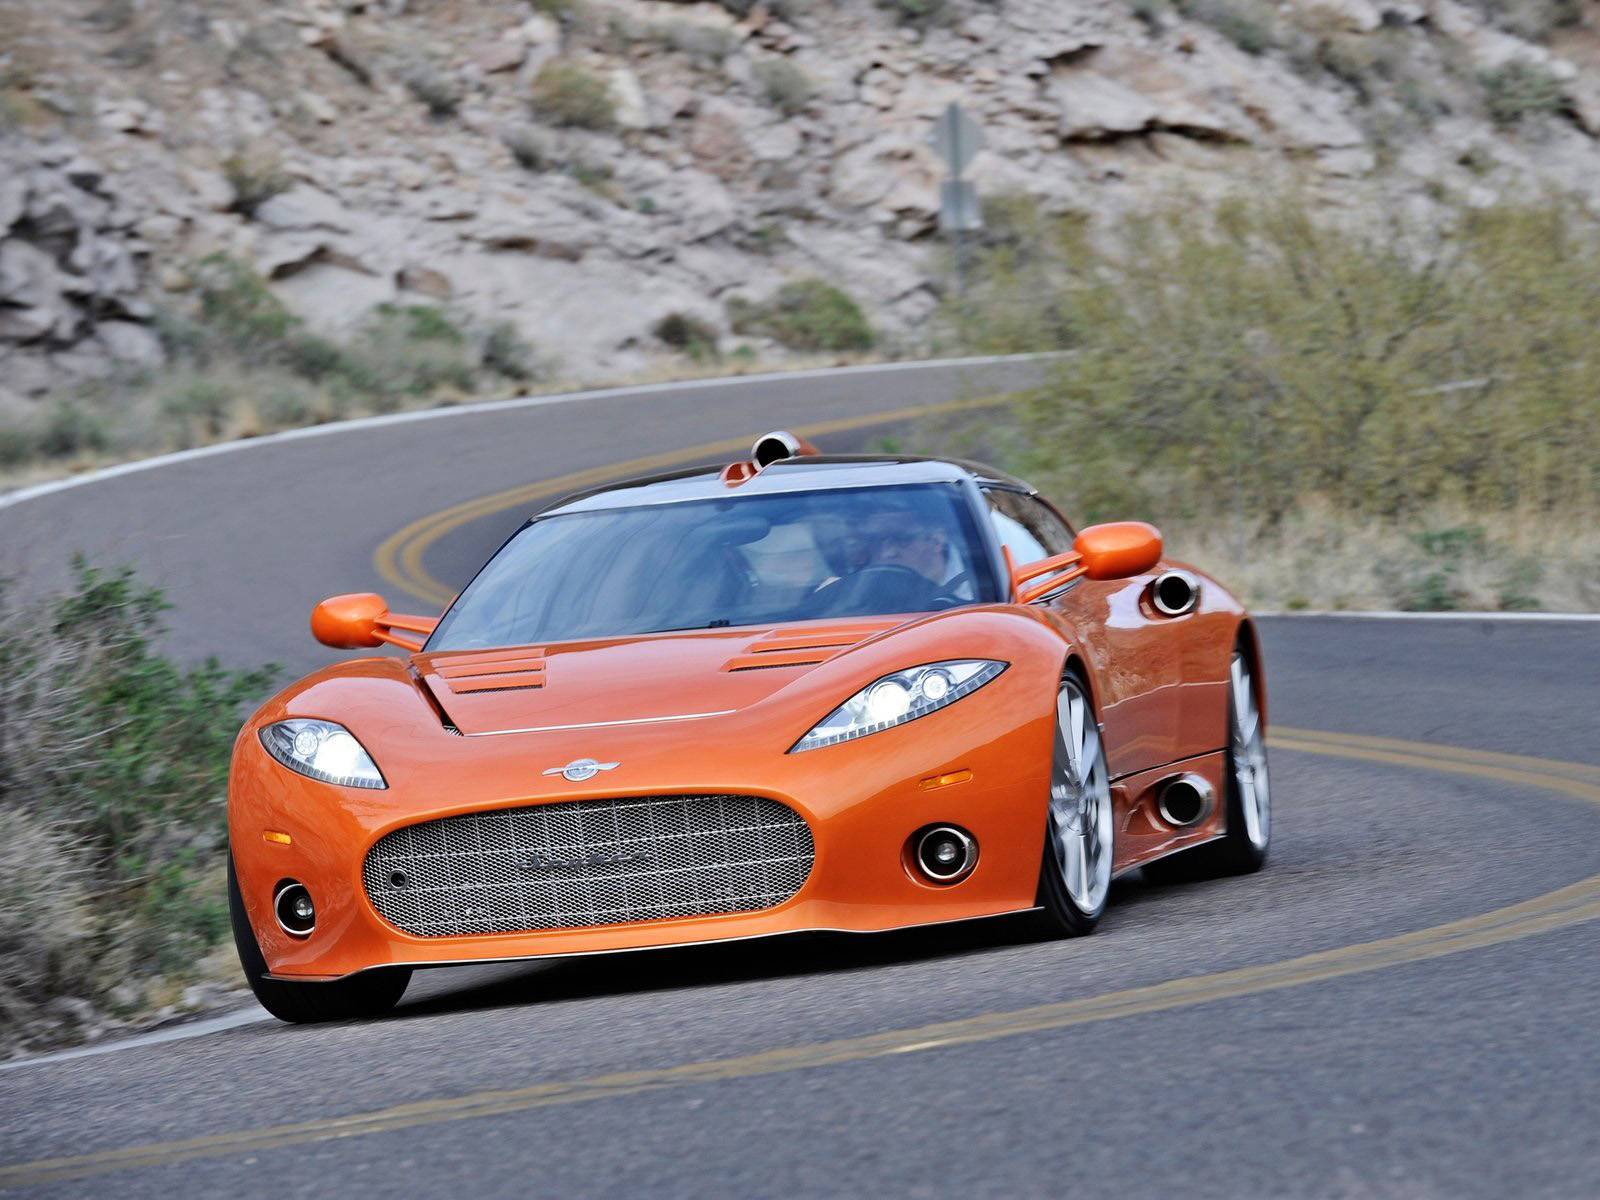 2017 Spyker C8 Aileron photo - 2